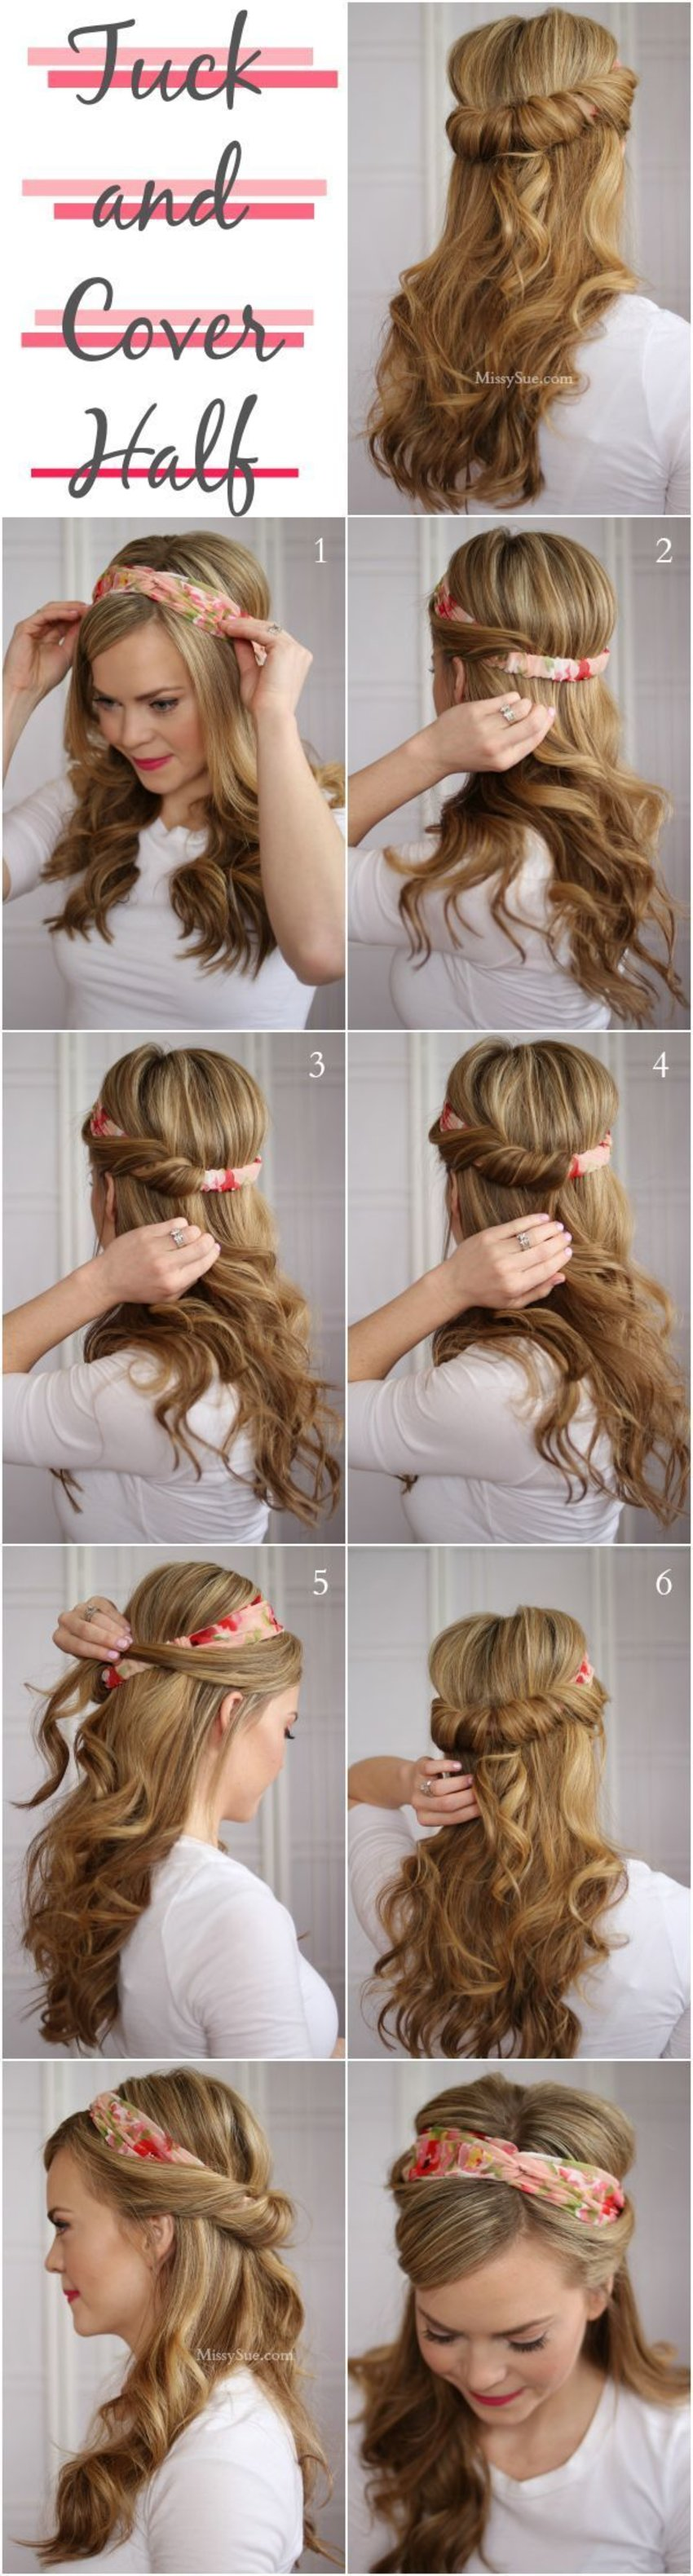 Looks pretty & quite easy to do!